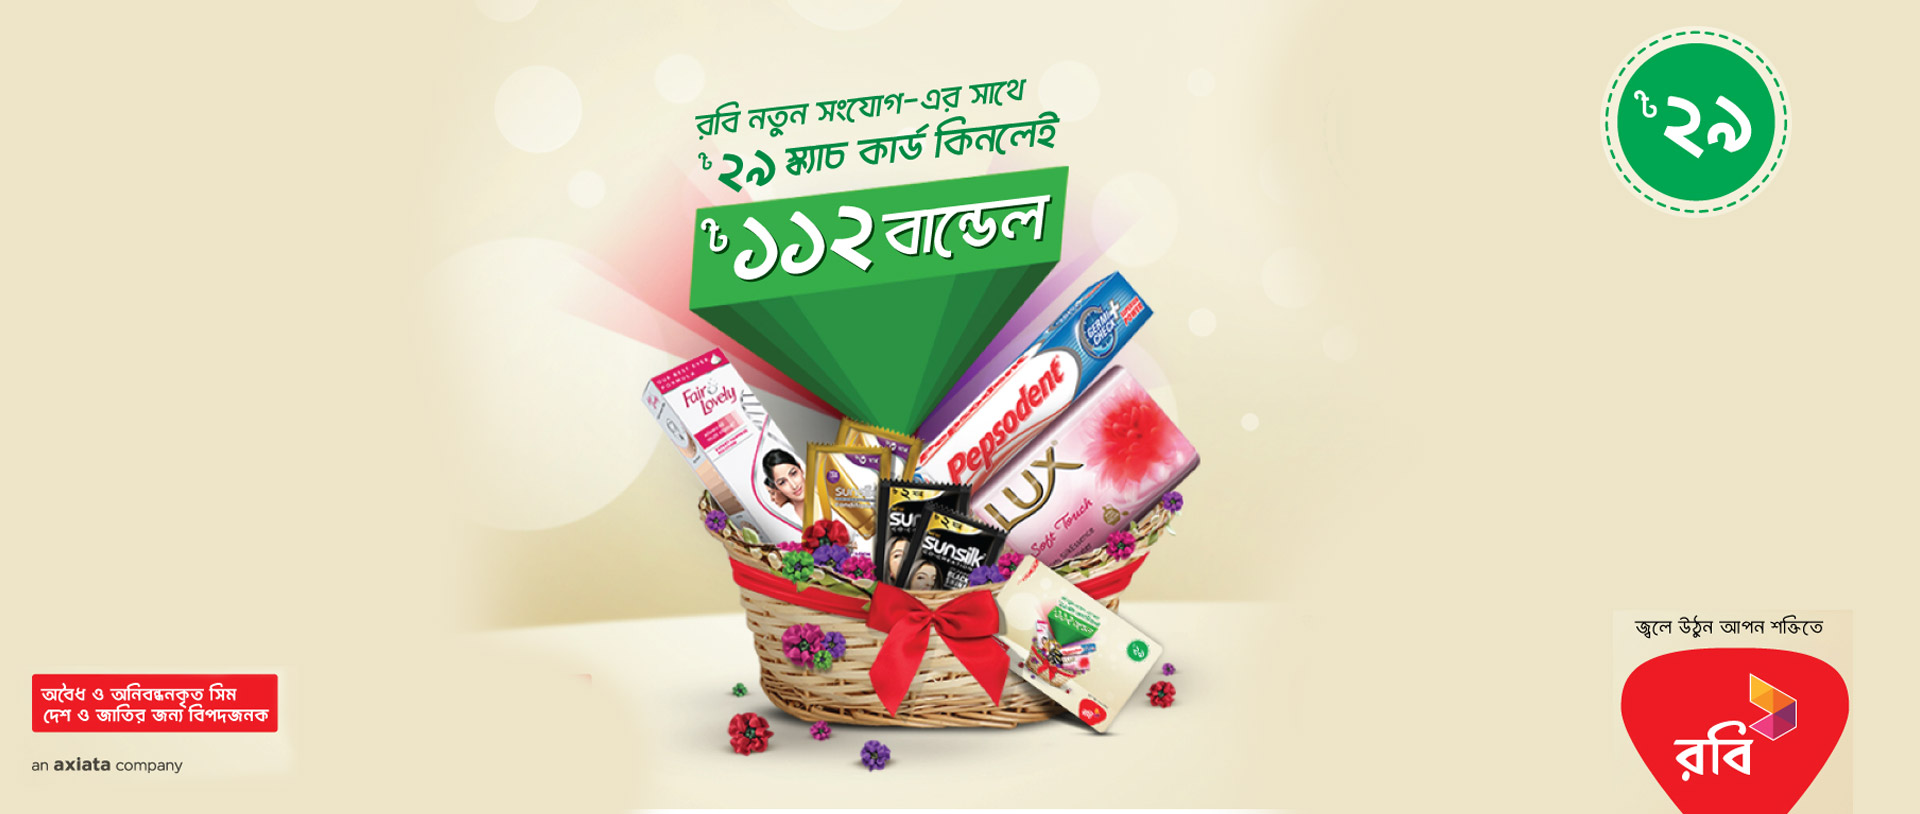 Buy Robi New sim connection With scratch card Get Free Unilever products